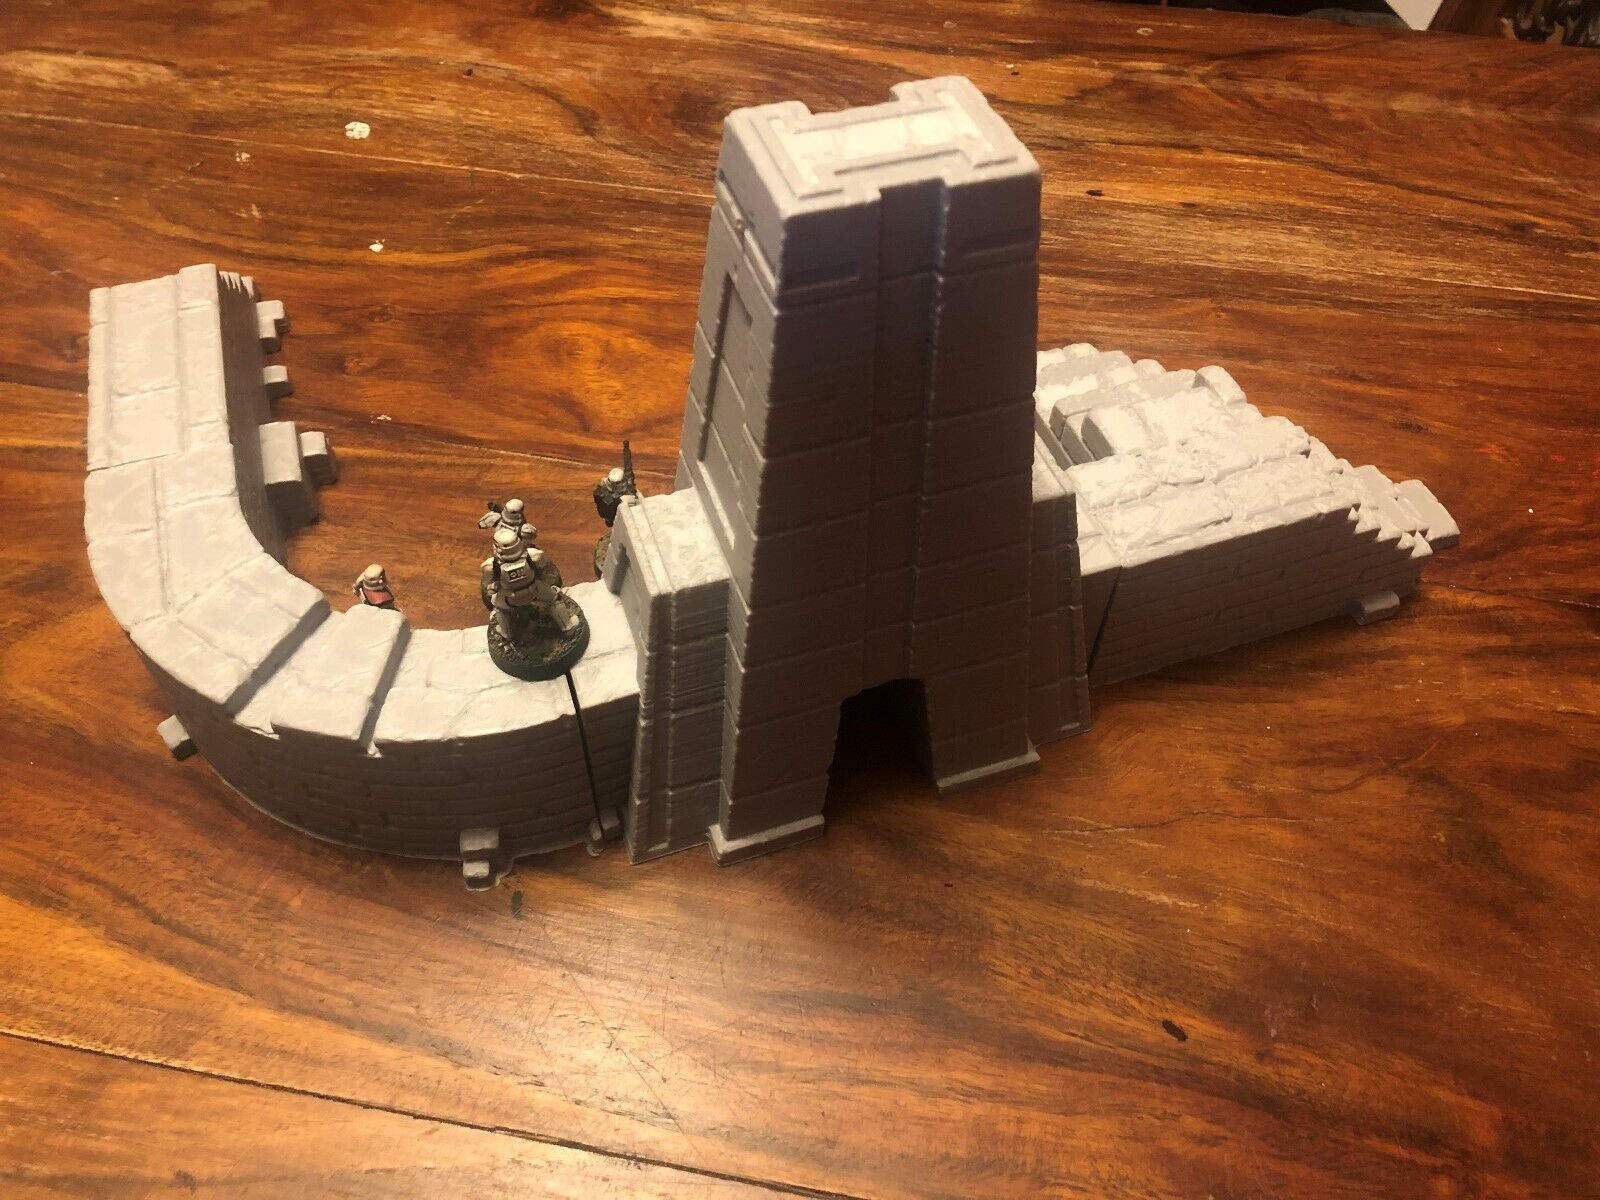 Star Wars Legion, Warhammer 40k, Age of Sigmar Terrain - Small Ruined Temple Set